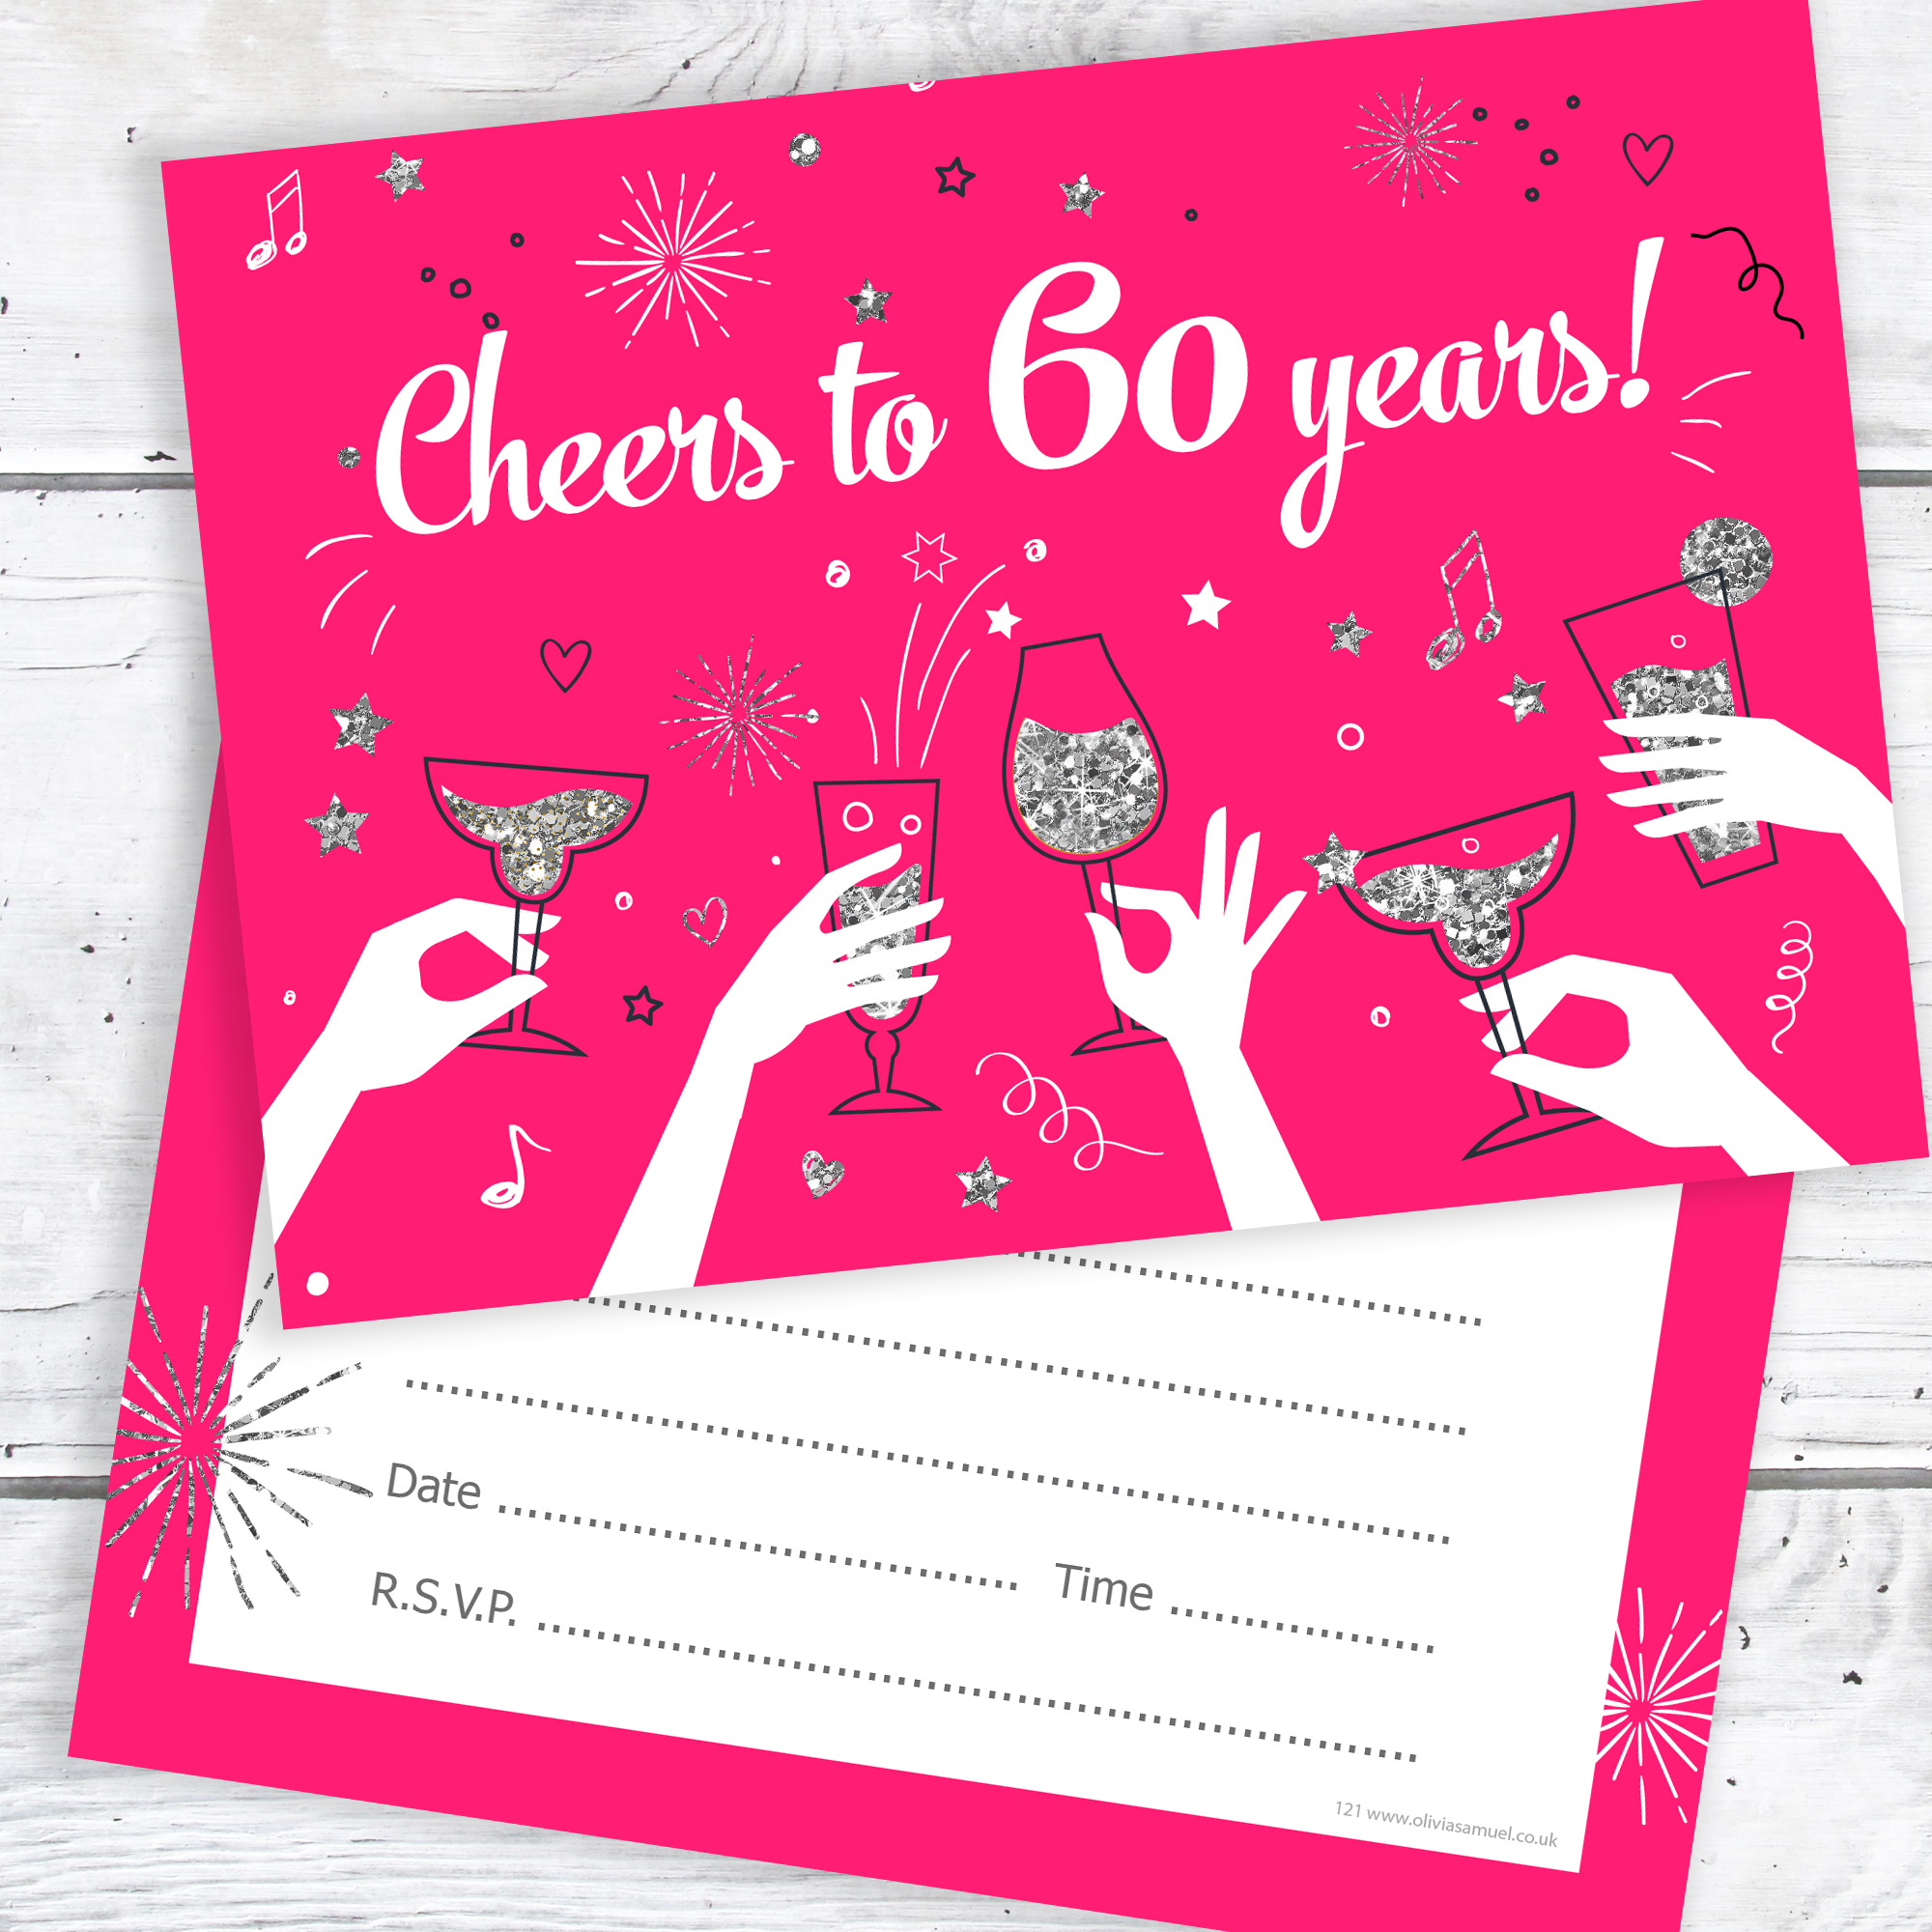 60th birthday party invitations cheers to 60 years ladies pack 10